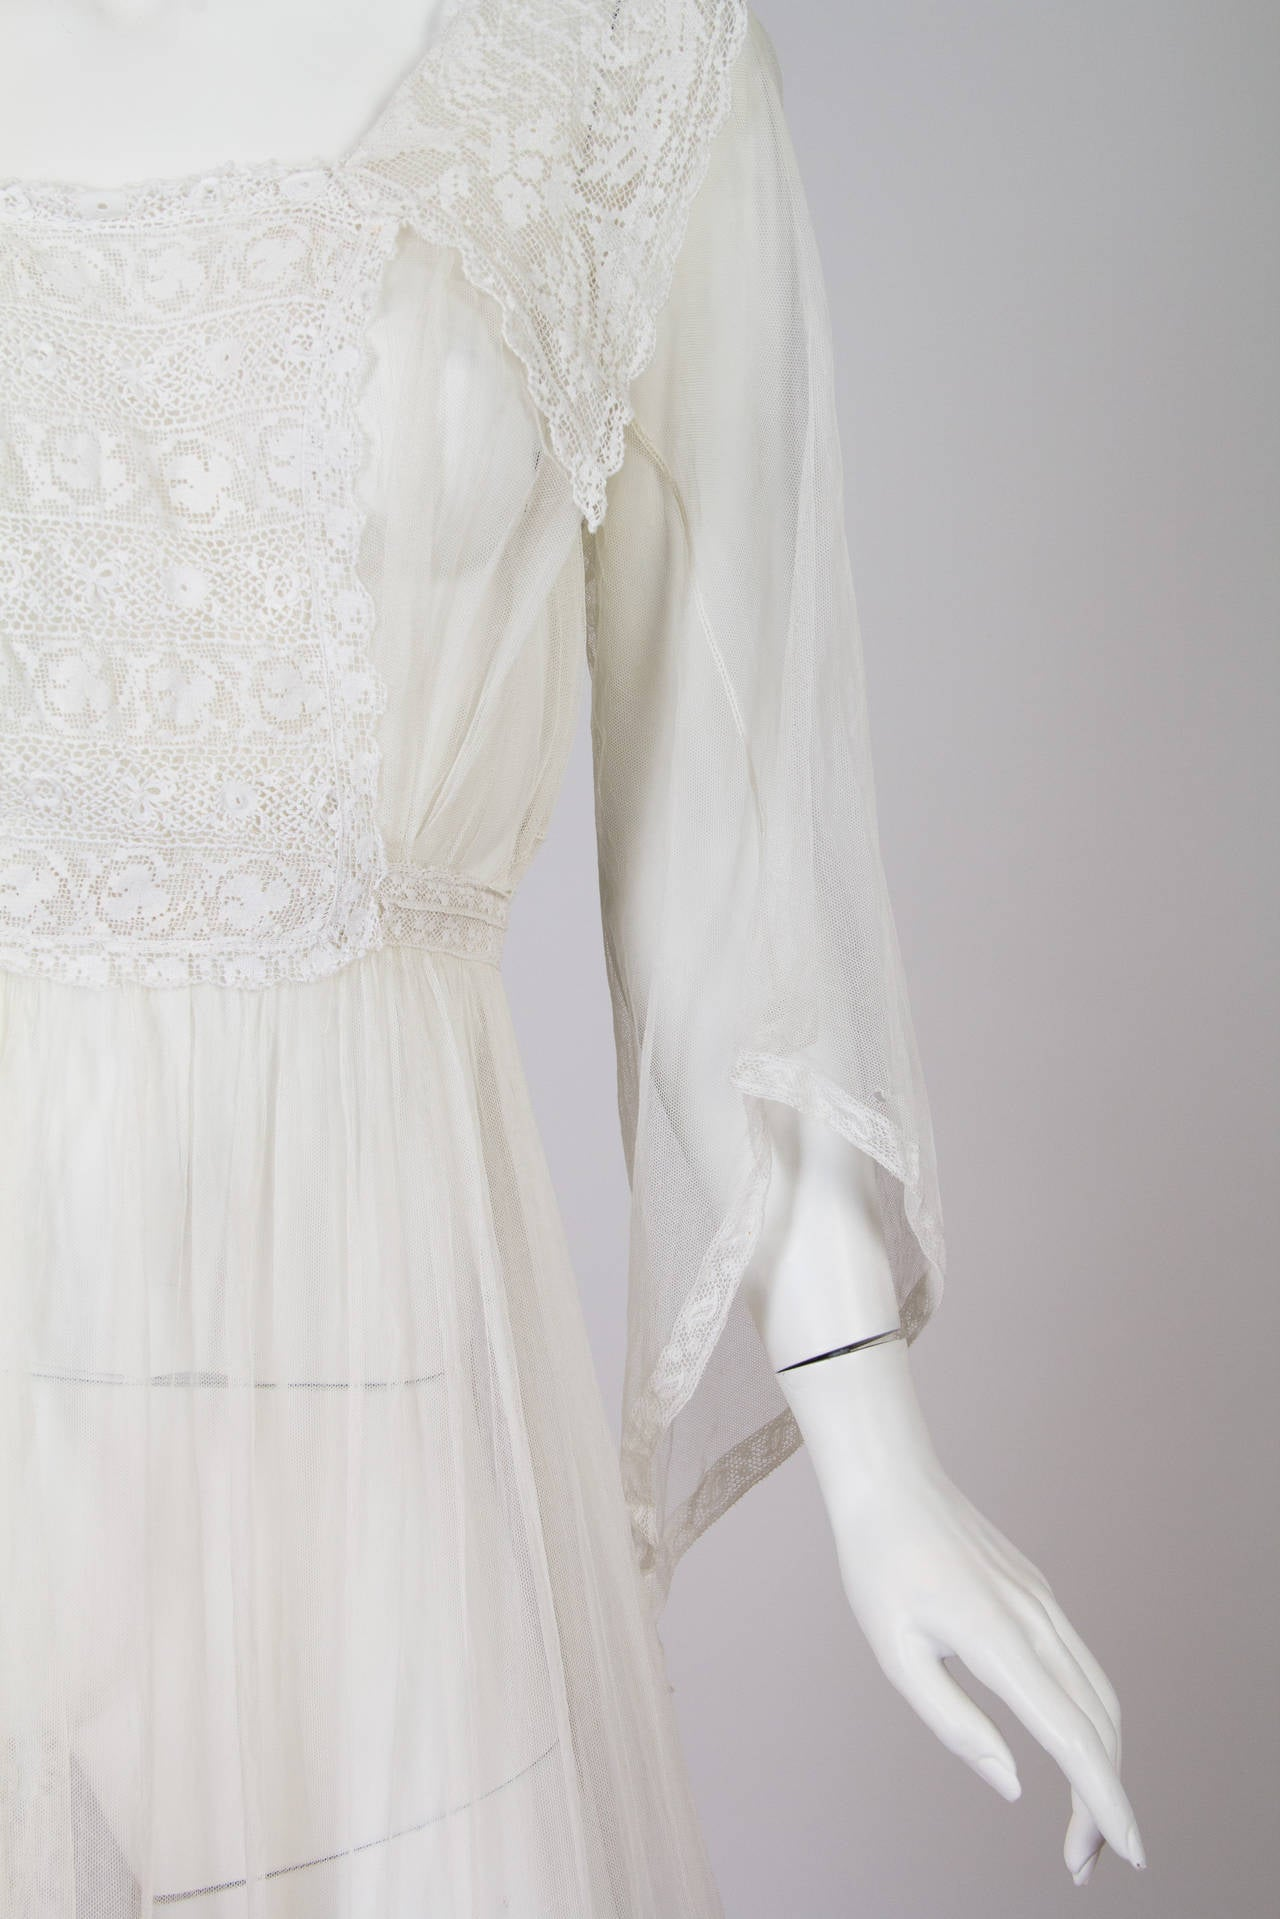 1910s Cotton Net Dress with Irish crochet and lace trim 7